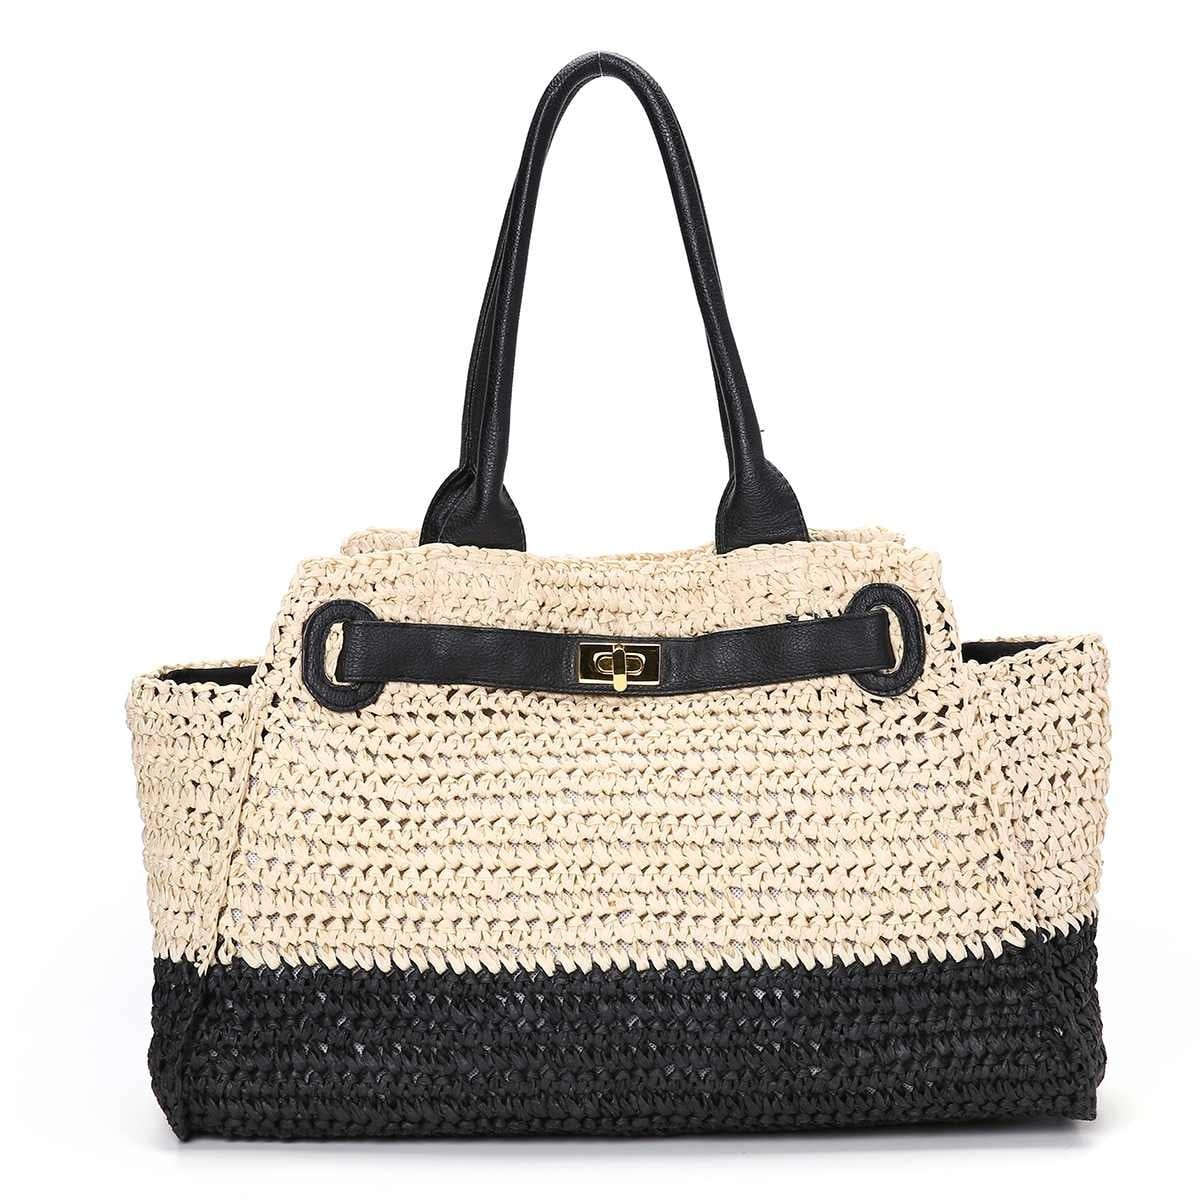 How luxury straw clutch bag recomment